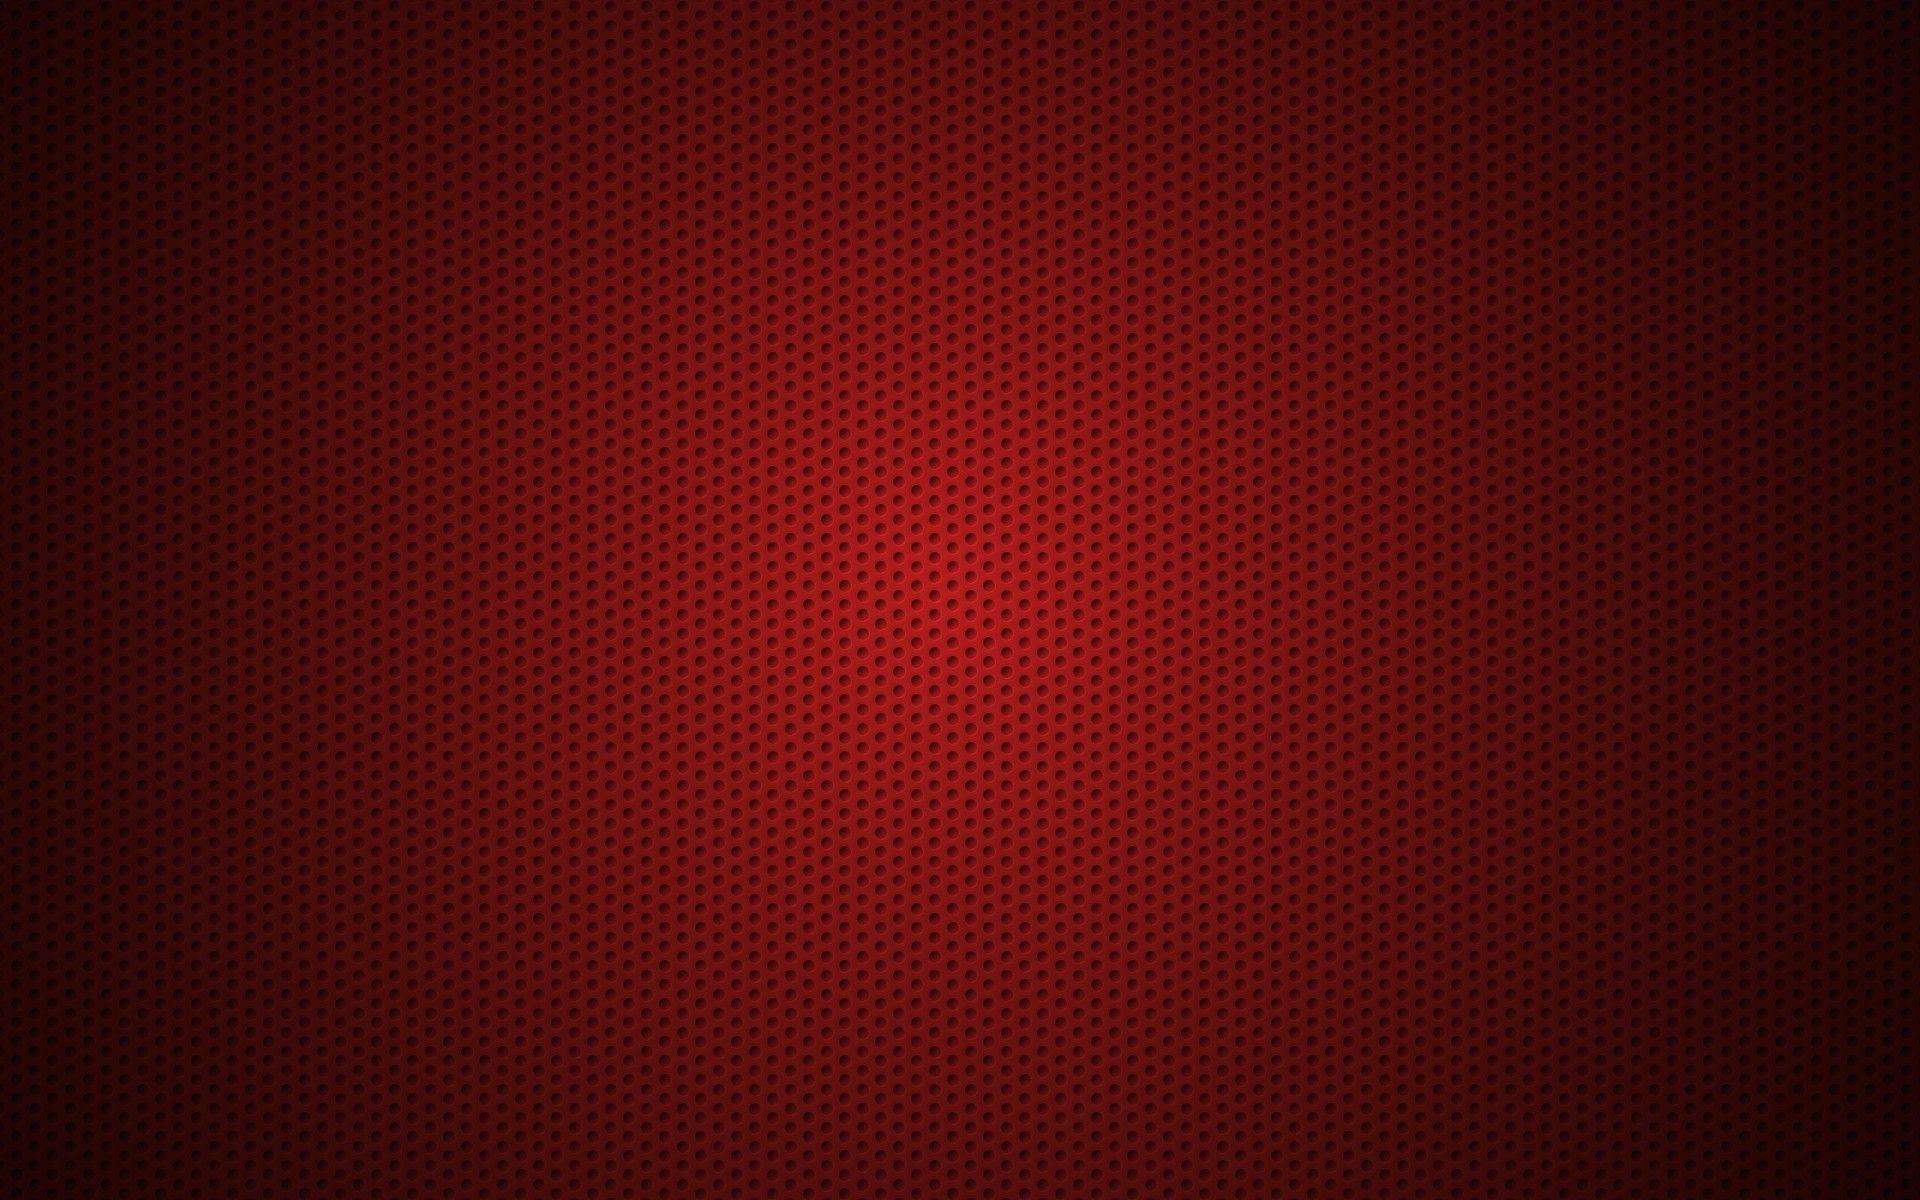 Red Texture Wallpapers